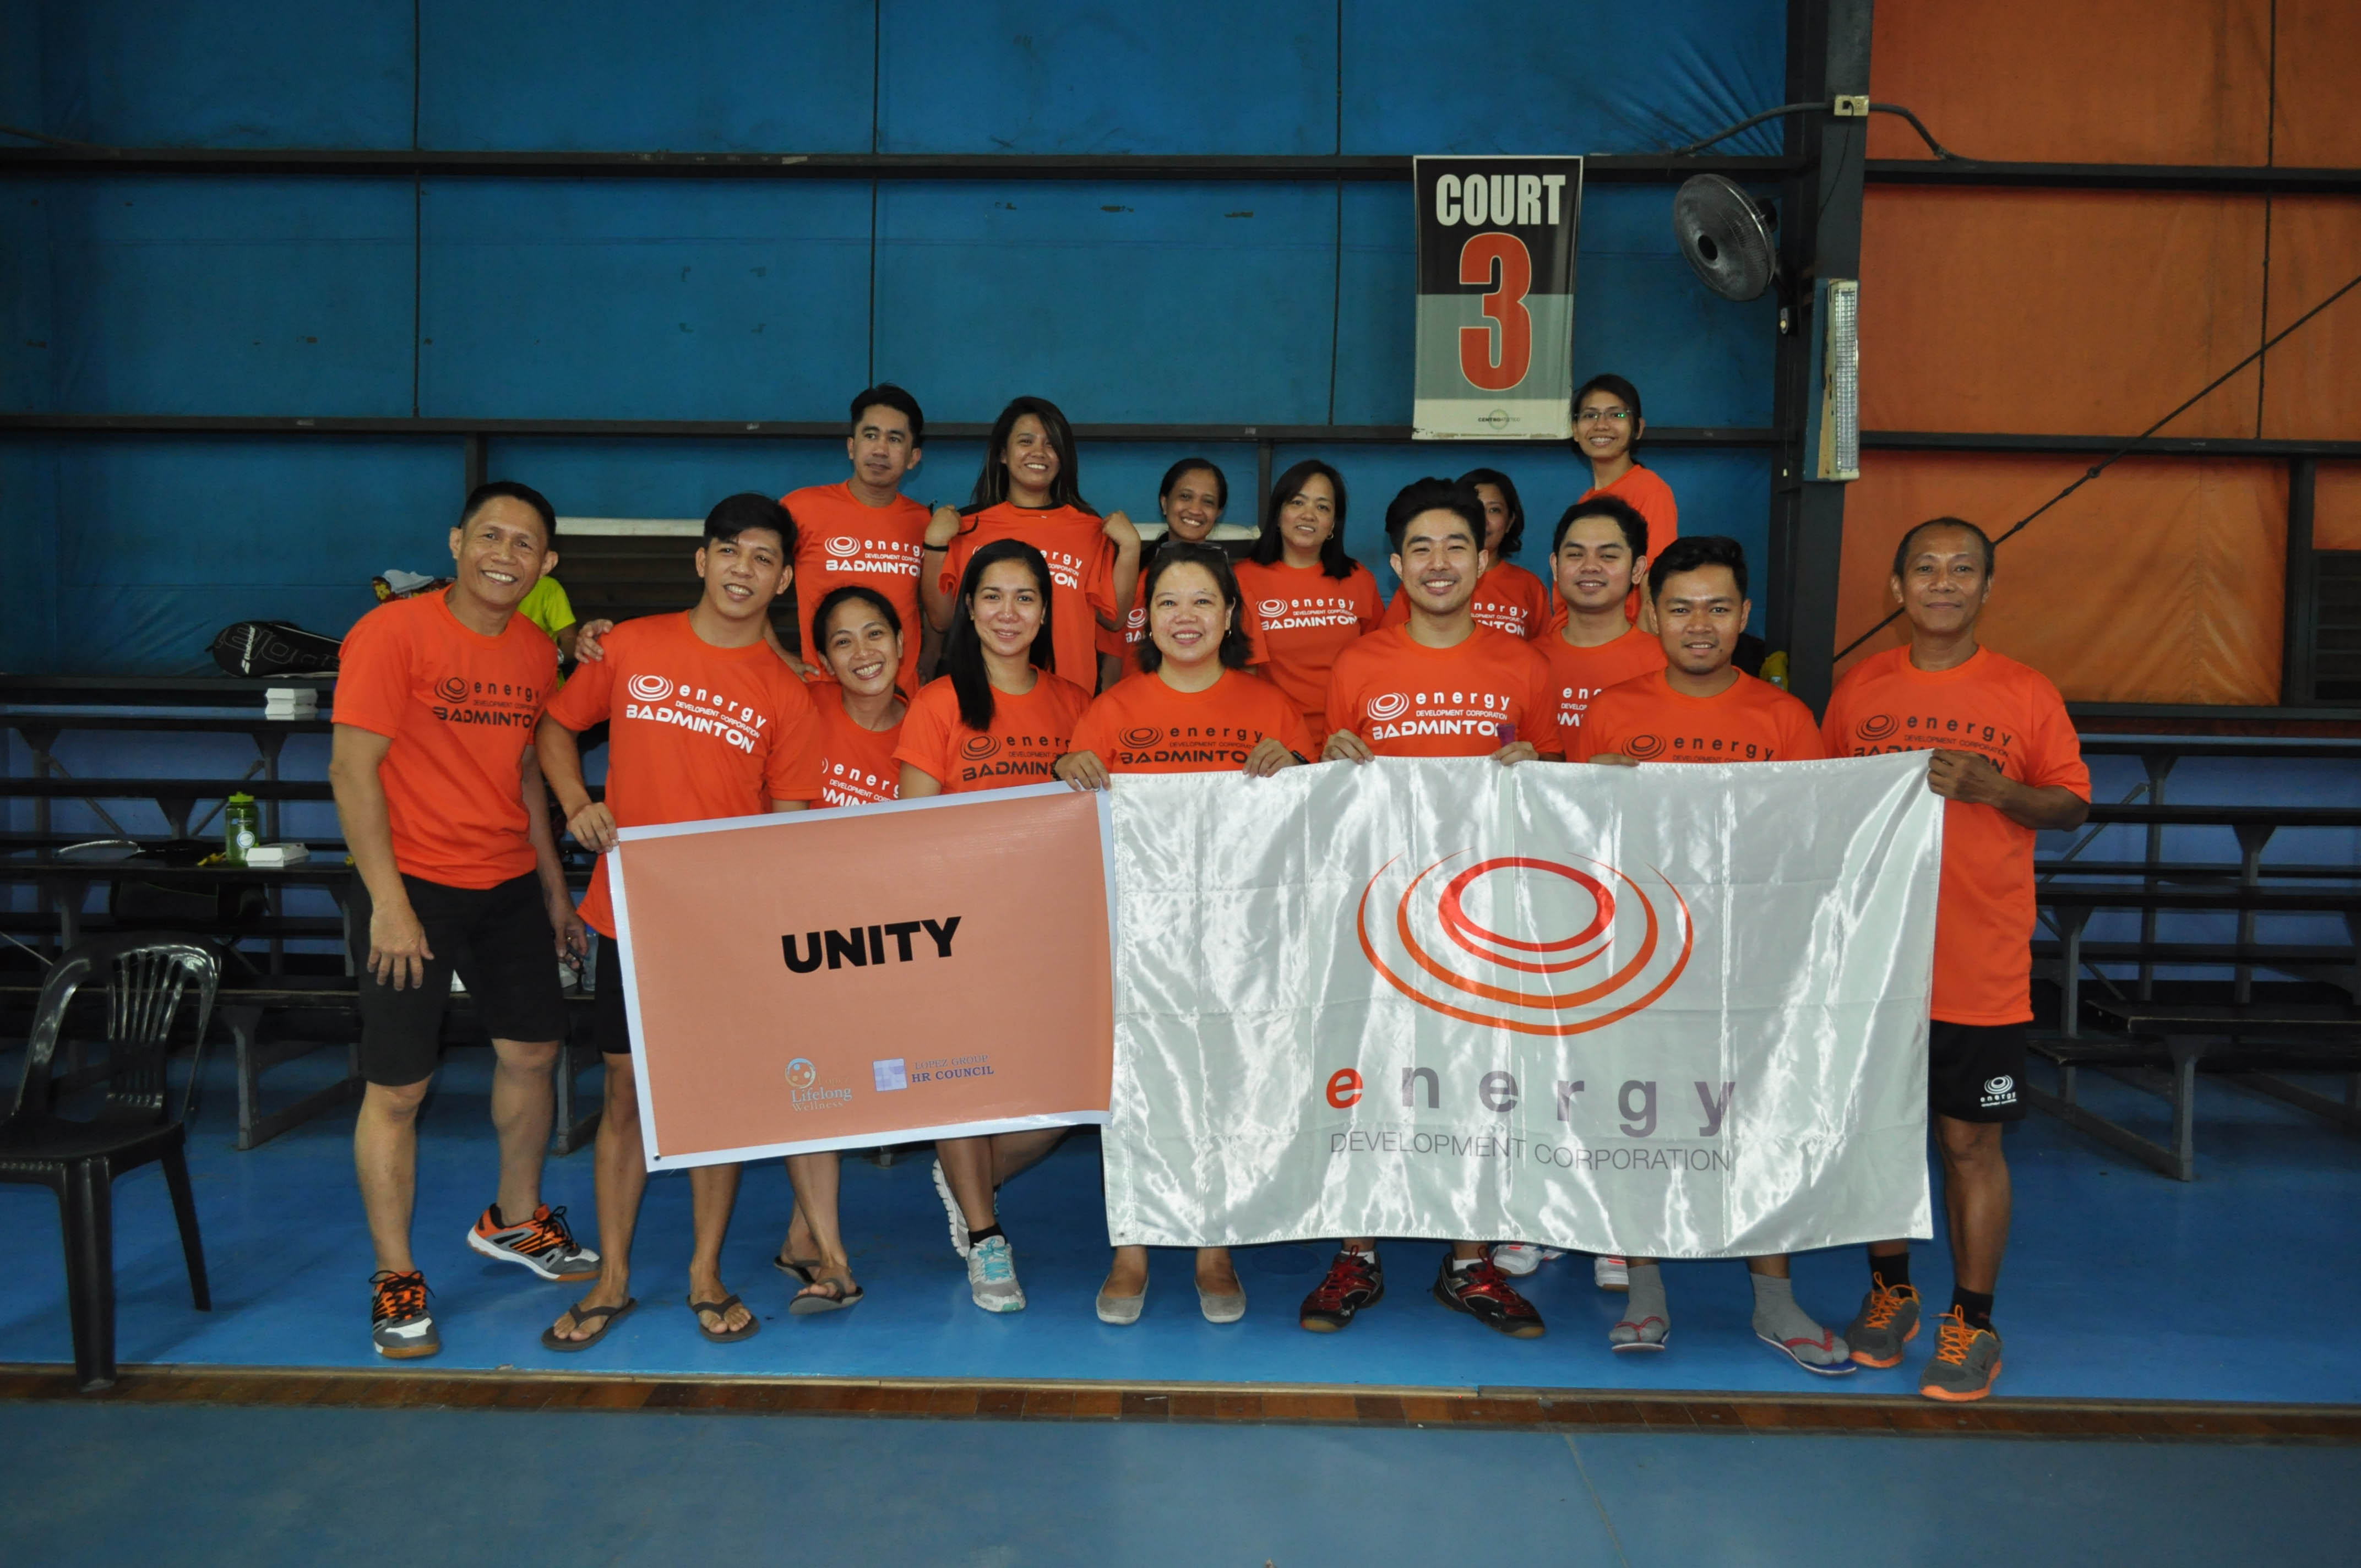 EDC and OML Center, as Team Orange, finished in second place